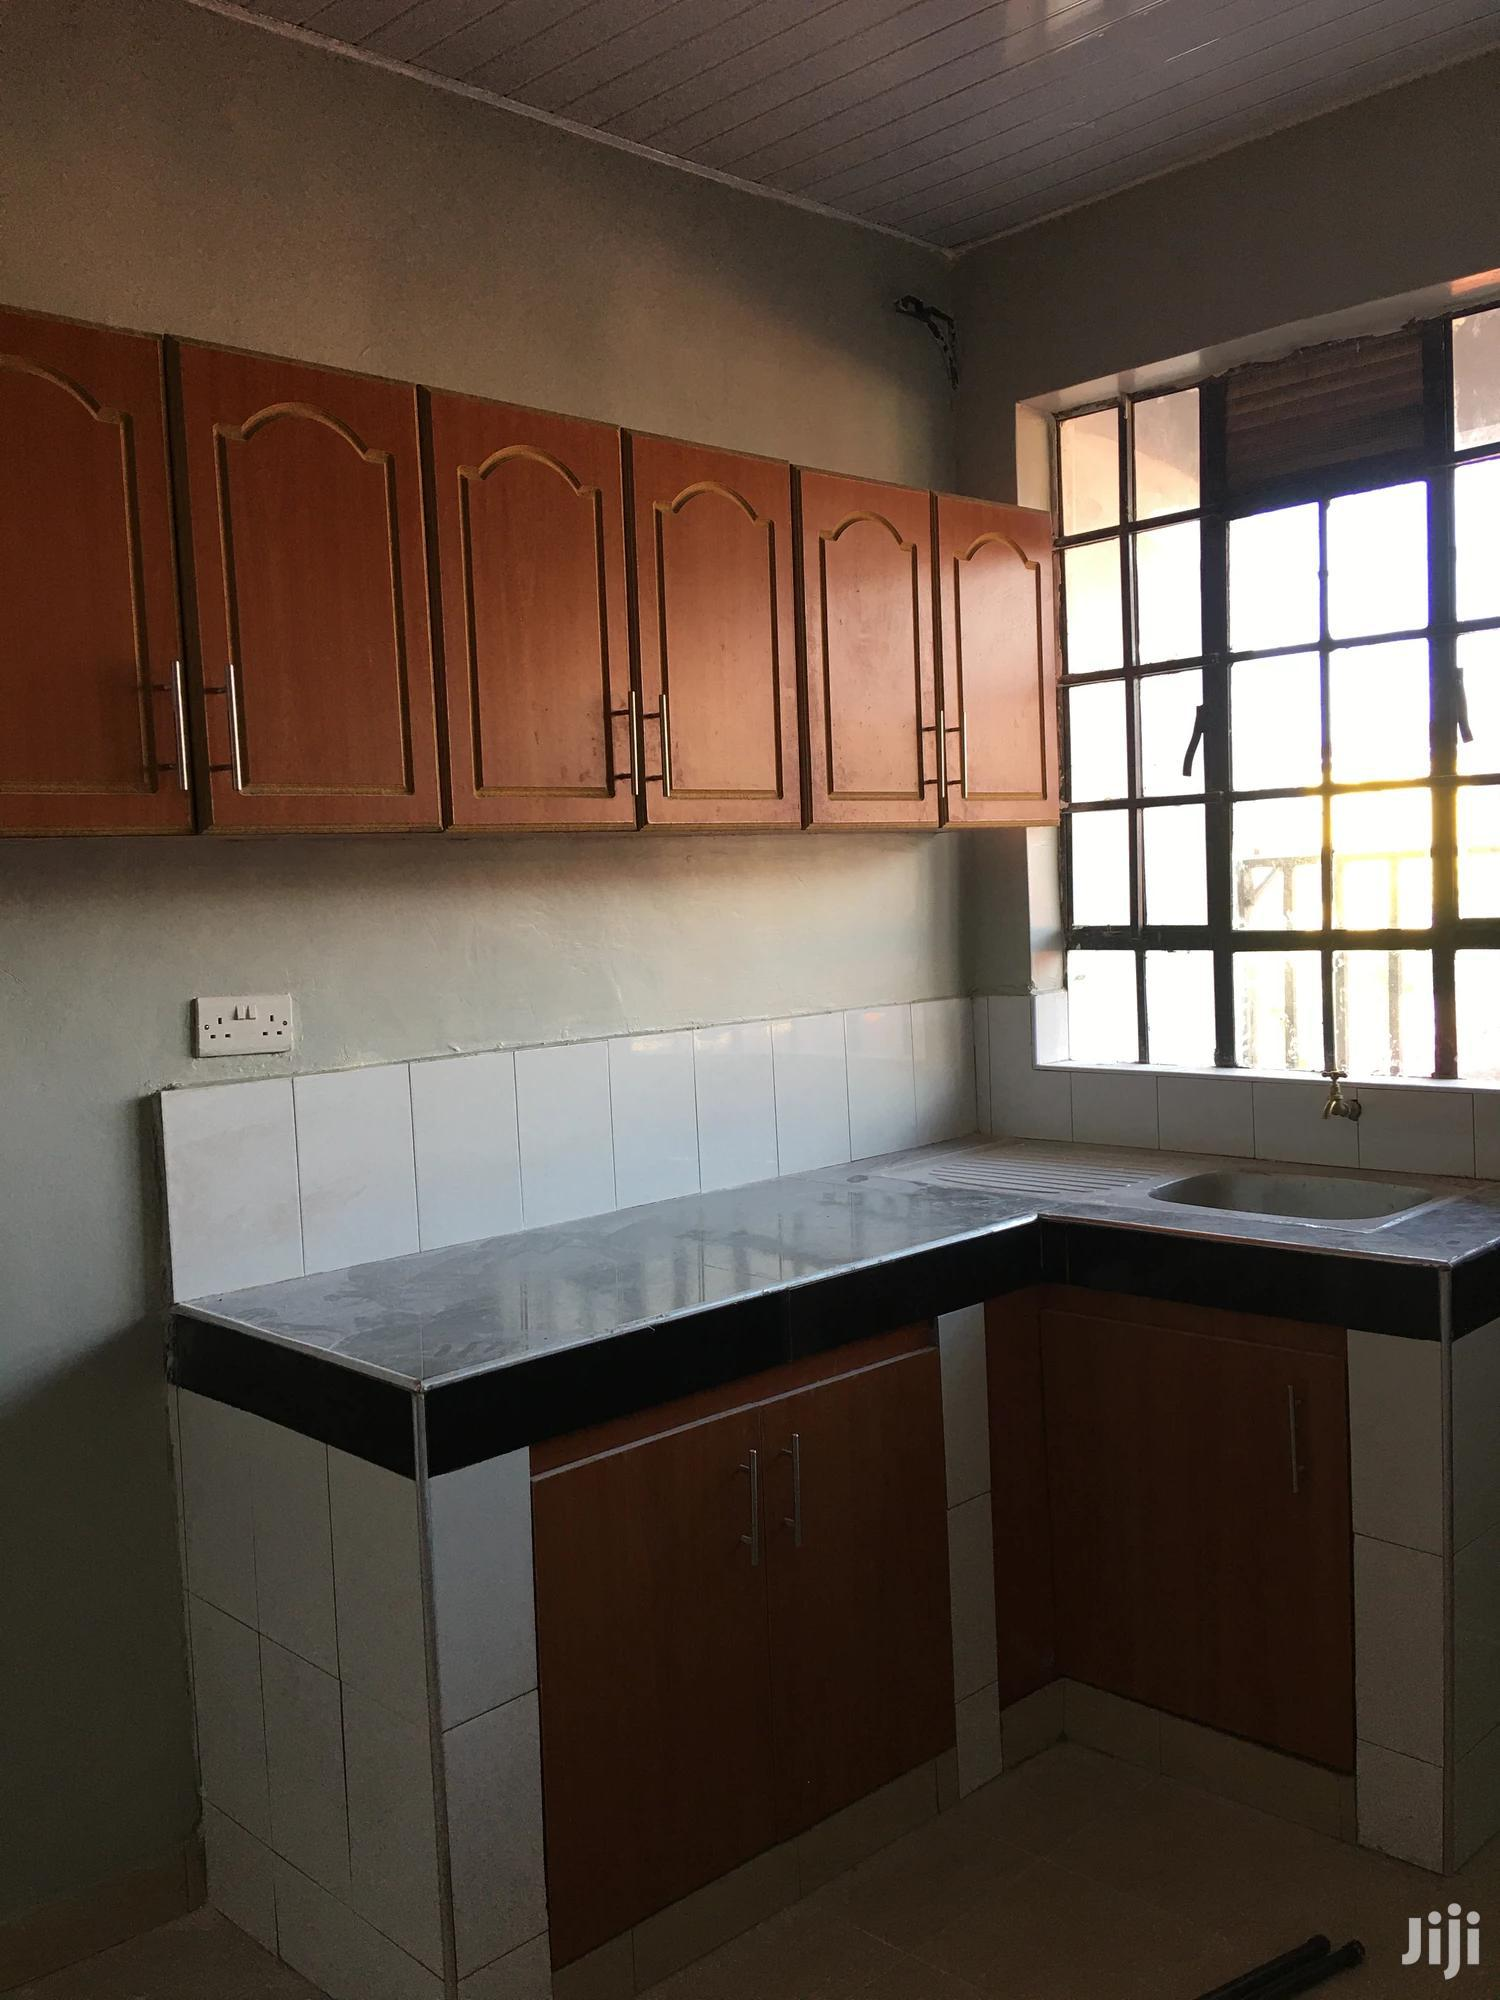 House To Rent In Kisumu Lolwe Estate